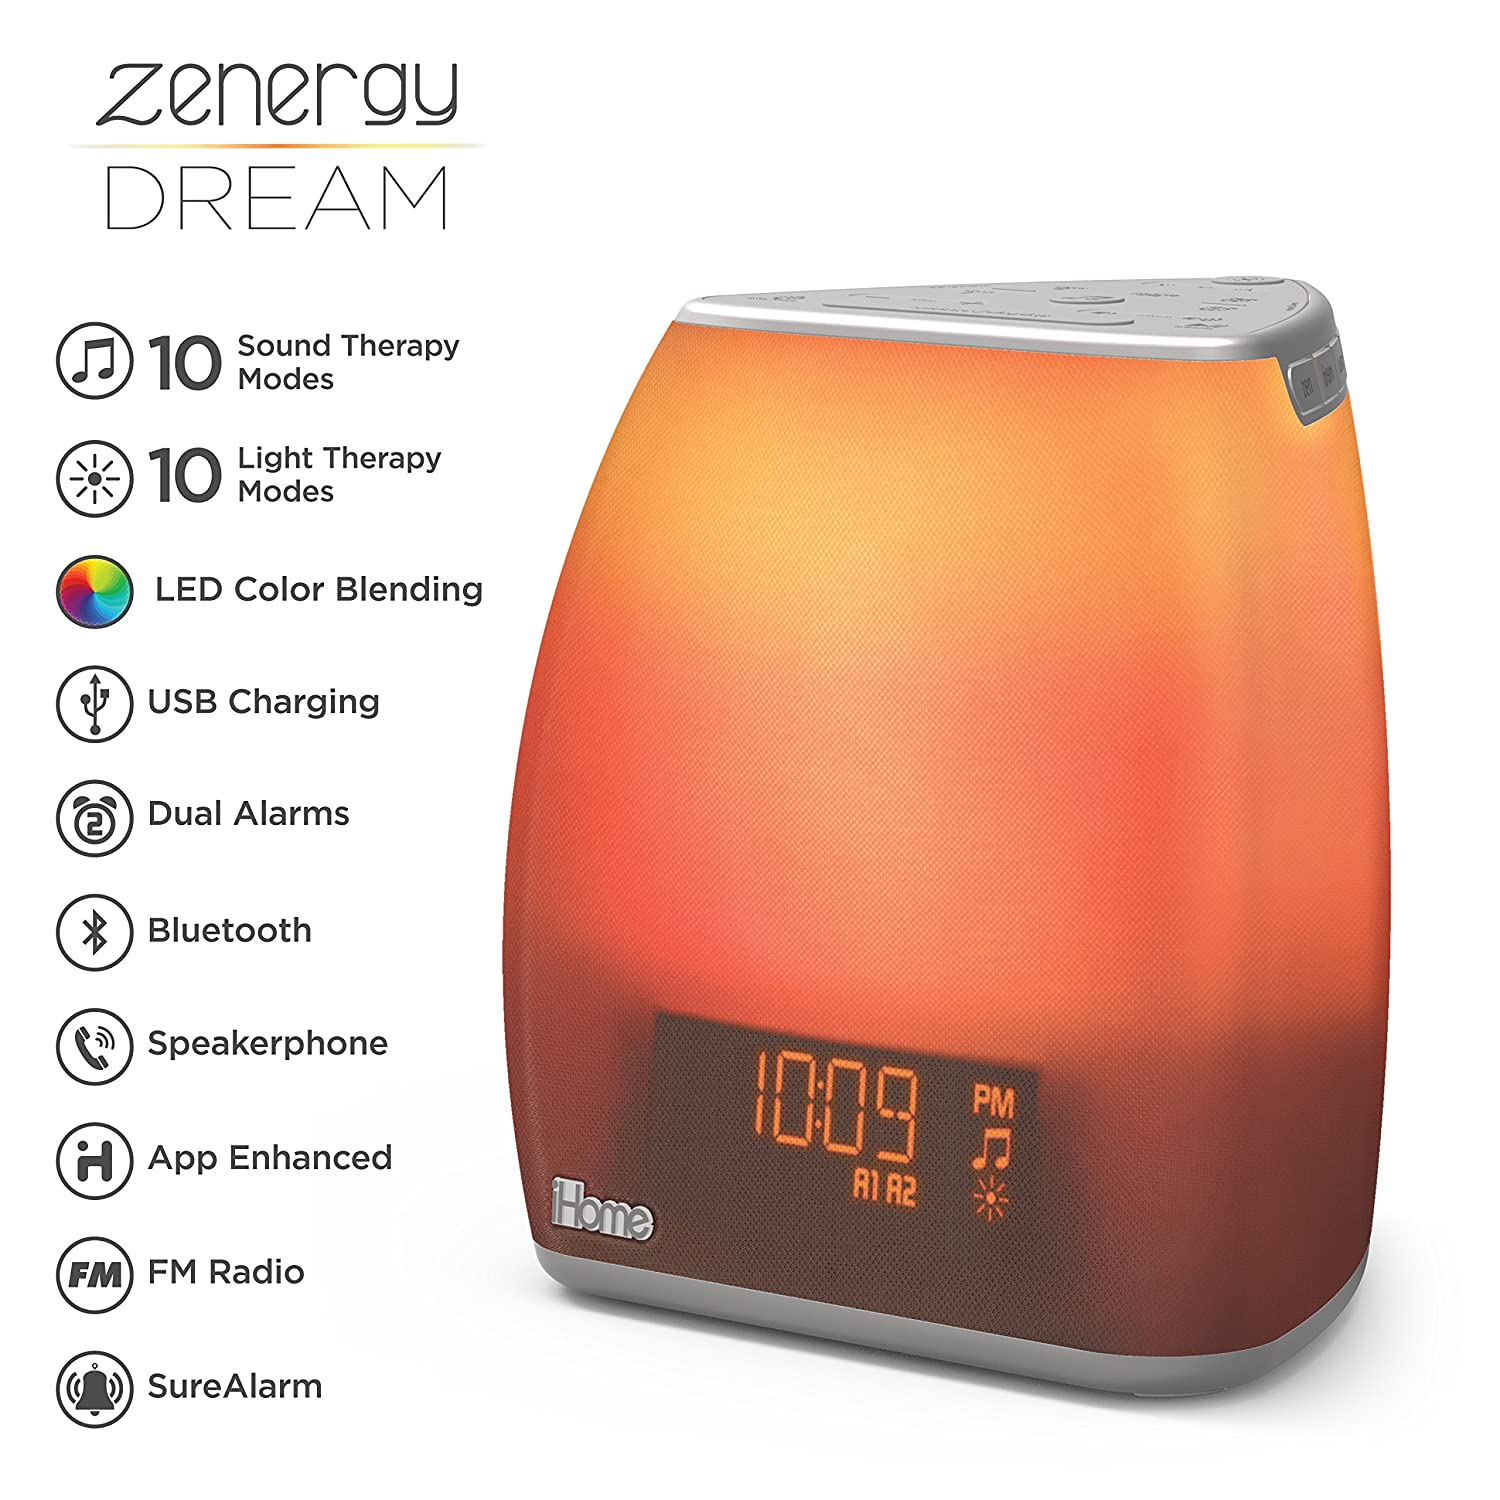 iHome Zenergy Bedside Sleep Therapy Machine Sleep Better, Easier & Longer, Zen Light & Sound Therapy Machine, Calming, Soothing Sounds, Soft Lighting, Bluetooth Audio, White Noise Machine sleep gadgets Sleep Gadgets – A Smart Way to Sleep Better To Enjoy a Healthy Day 91NN6ZfGJjL